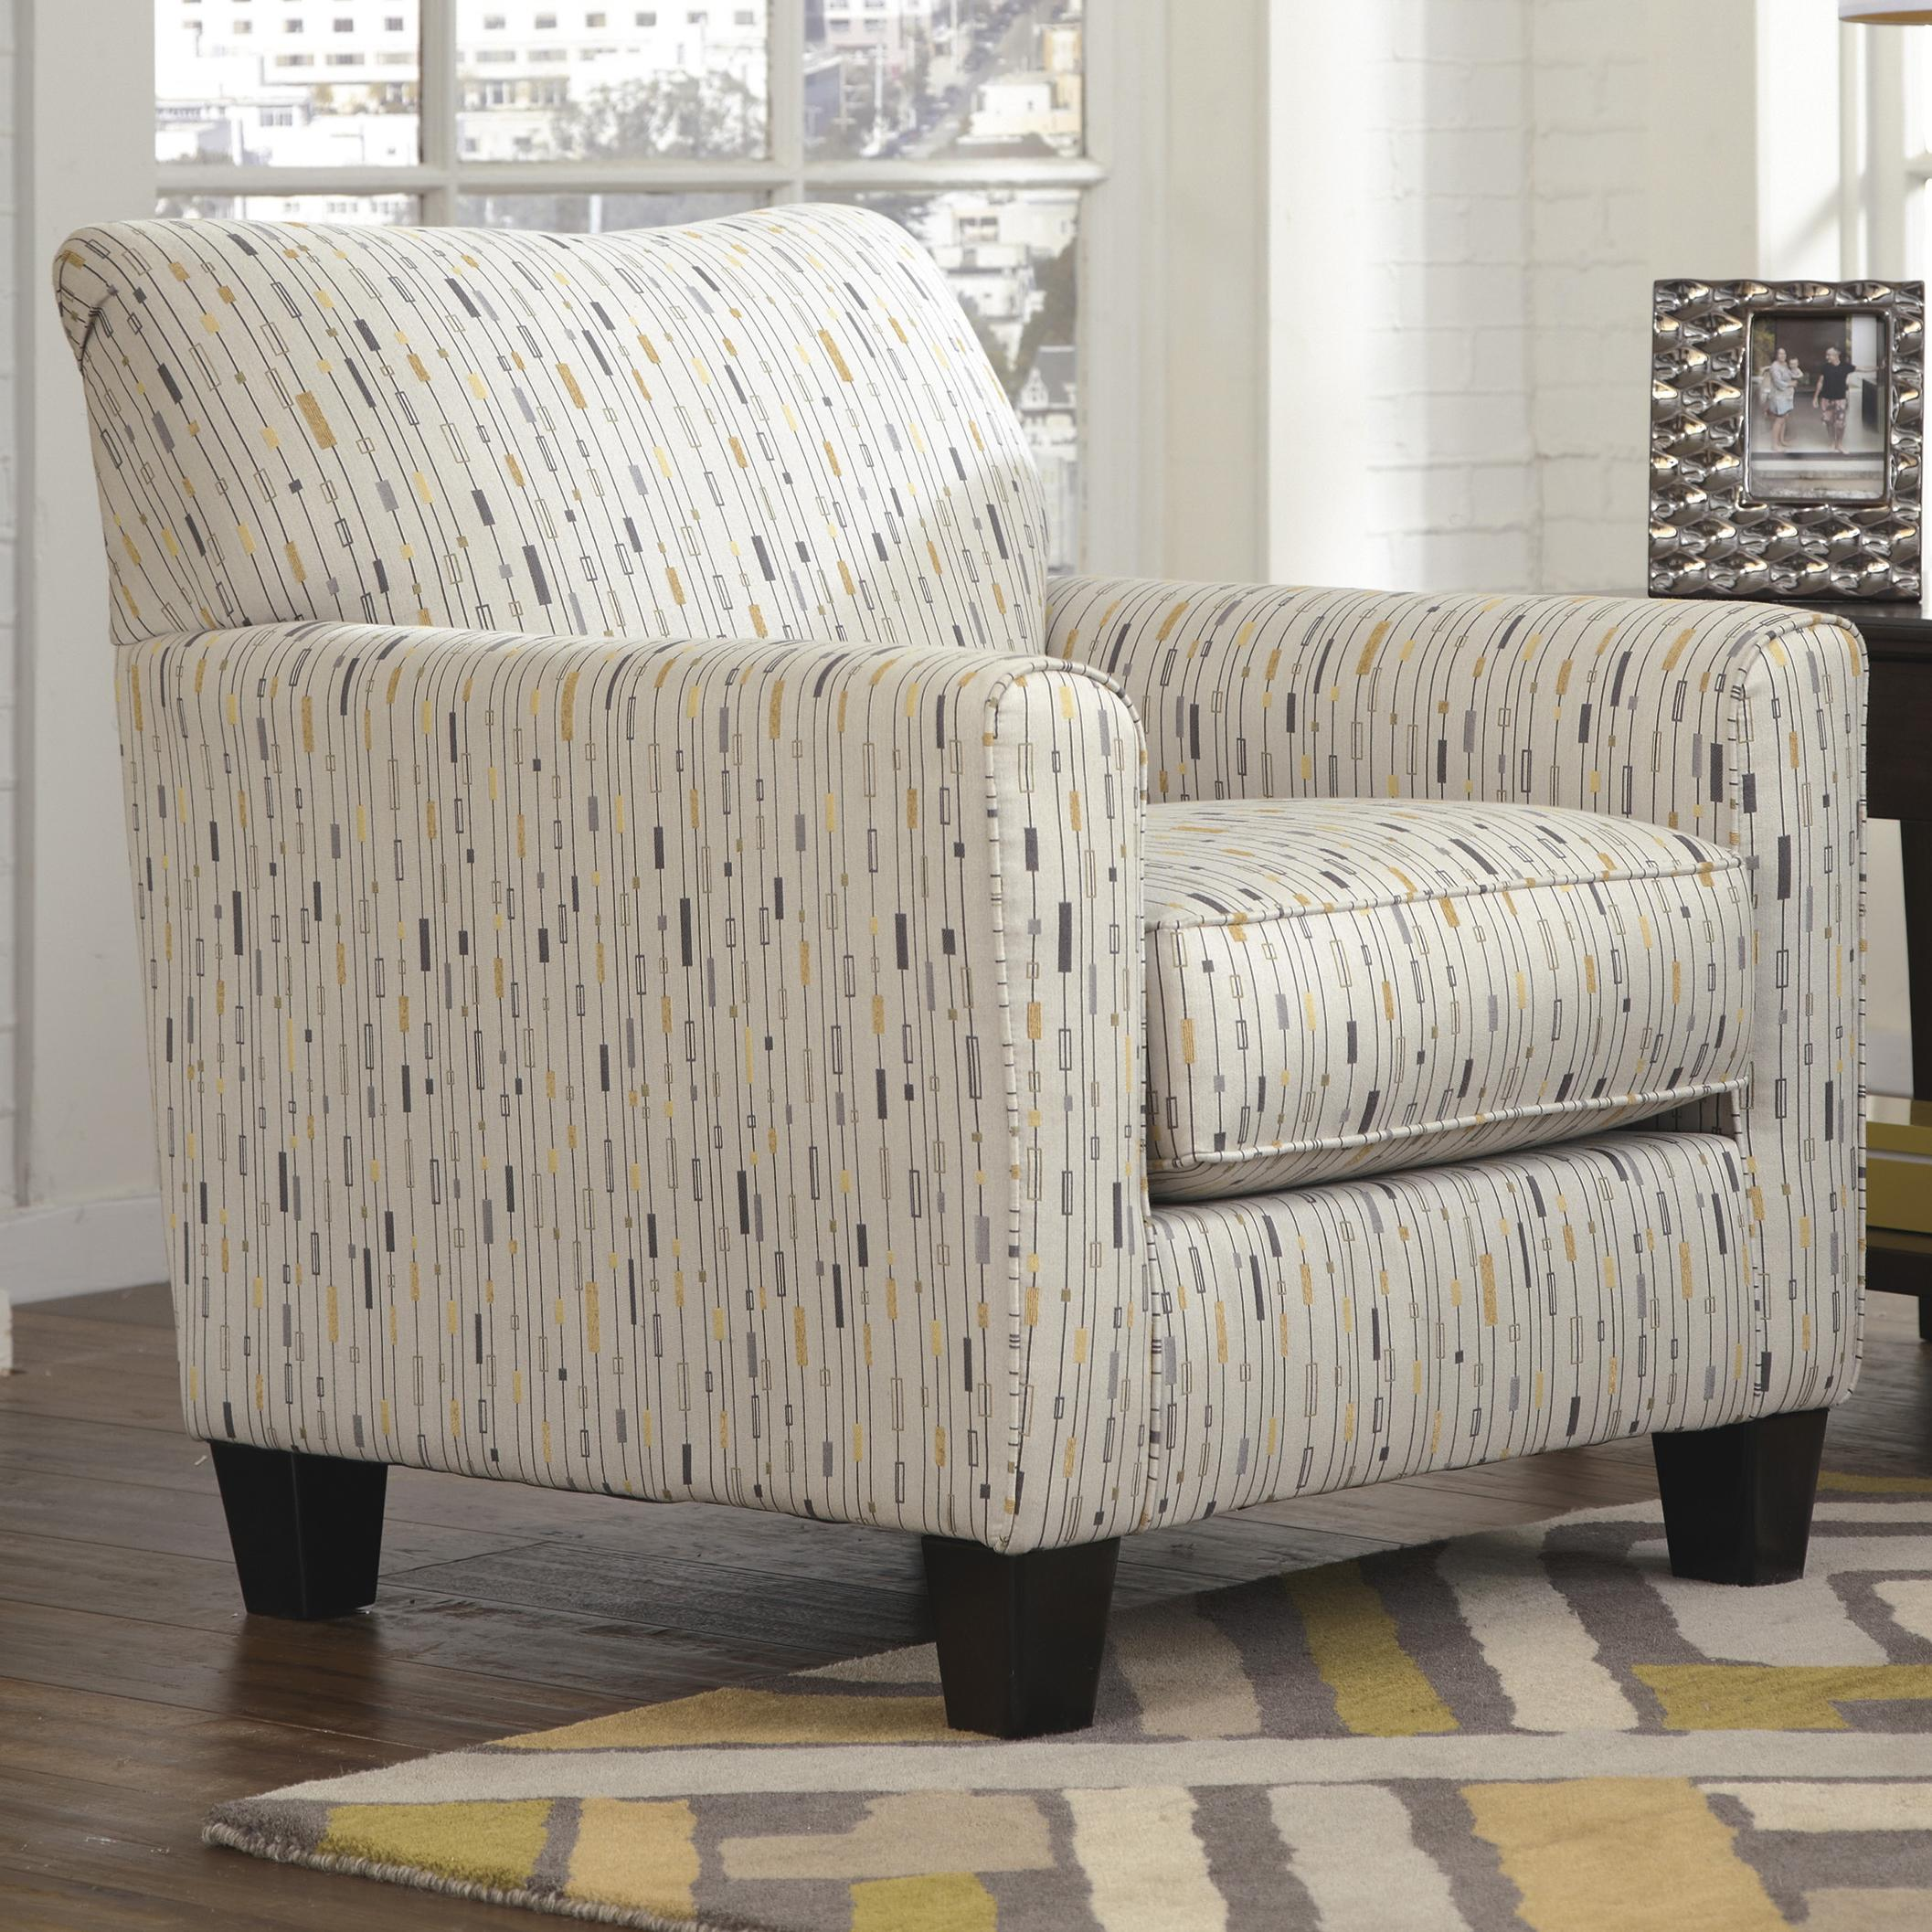 Signature Design by Ashley Hodan Accent Chair - Item Number: 7970021